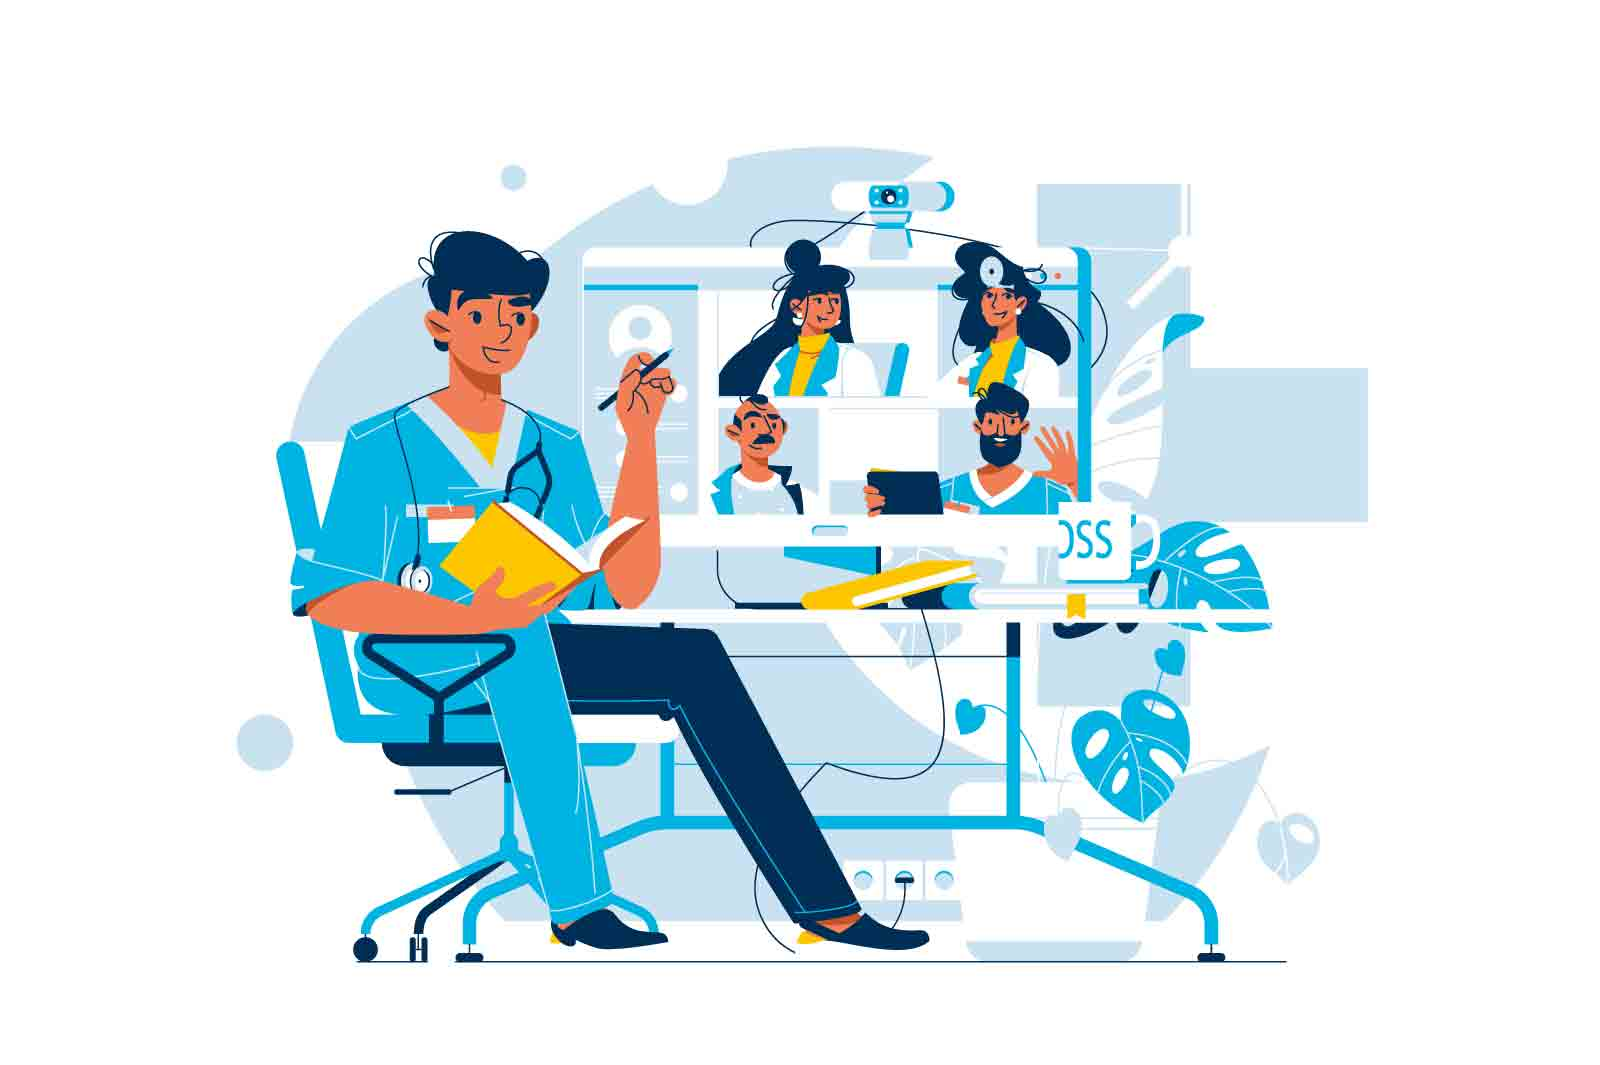 Doctors online video conference meeting vector illustration. Talking with medical professionals flat style. Medicine, healthcare concept